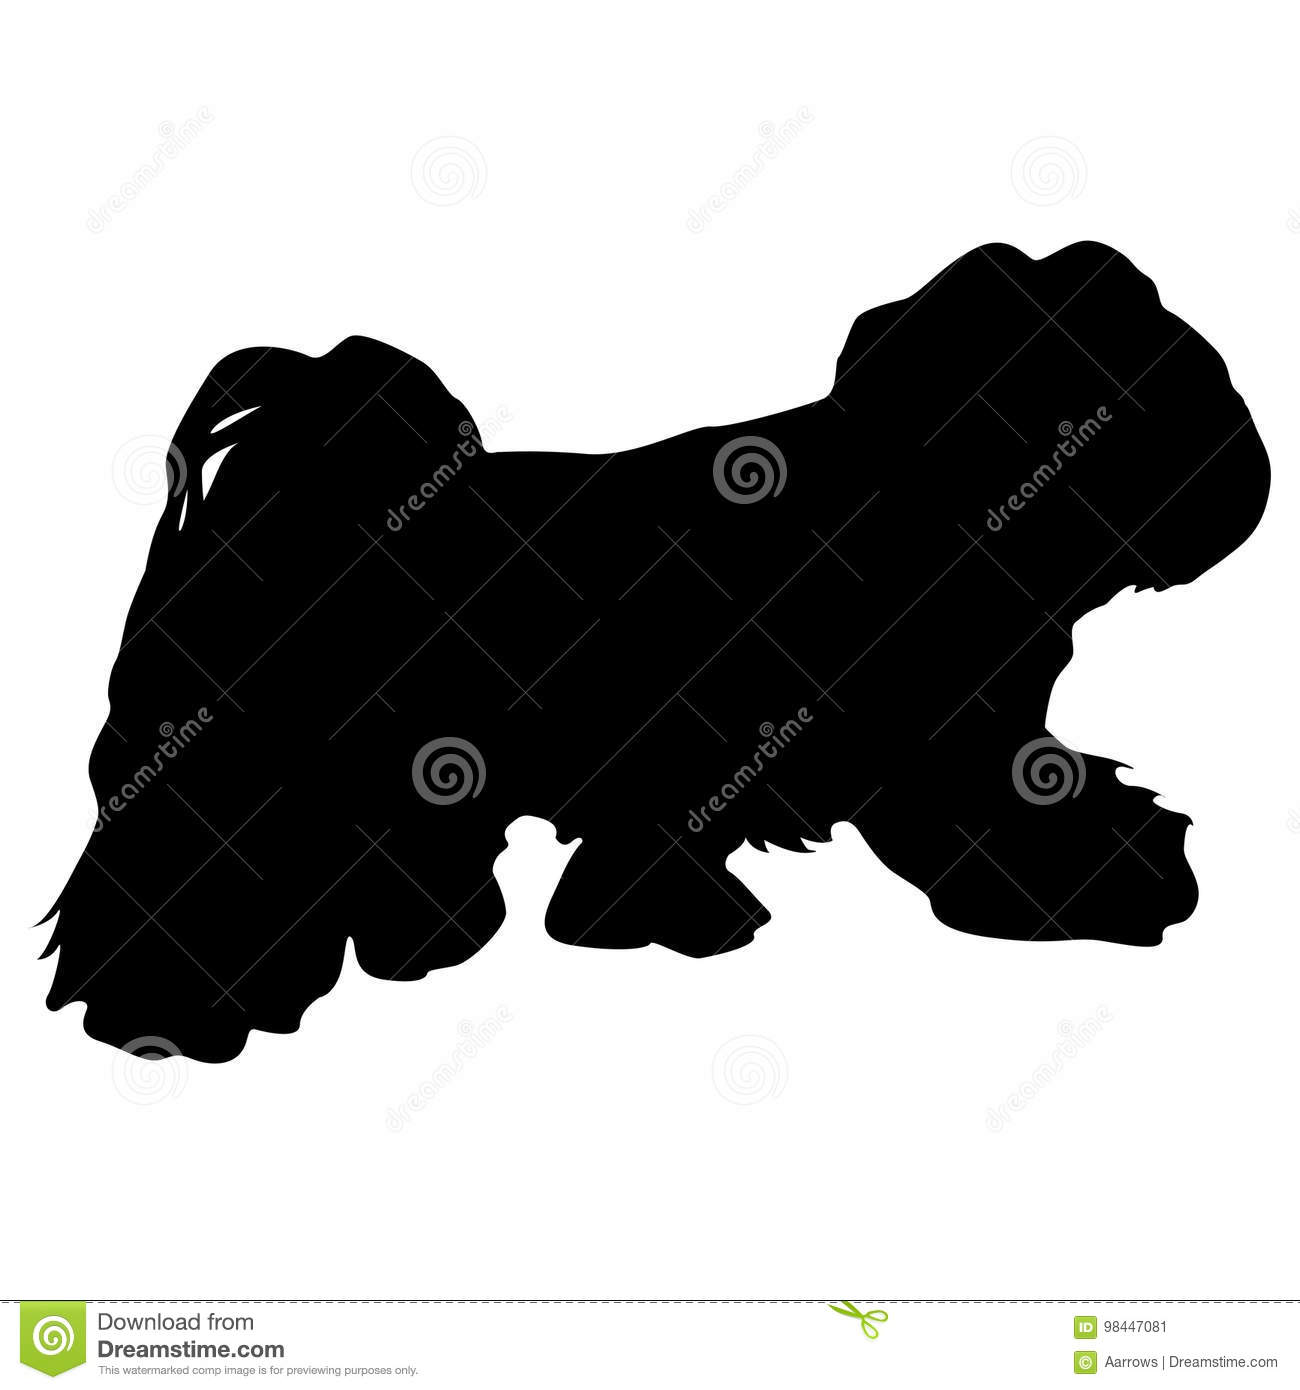 Lap dog silhouette on a white background